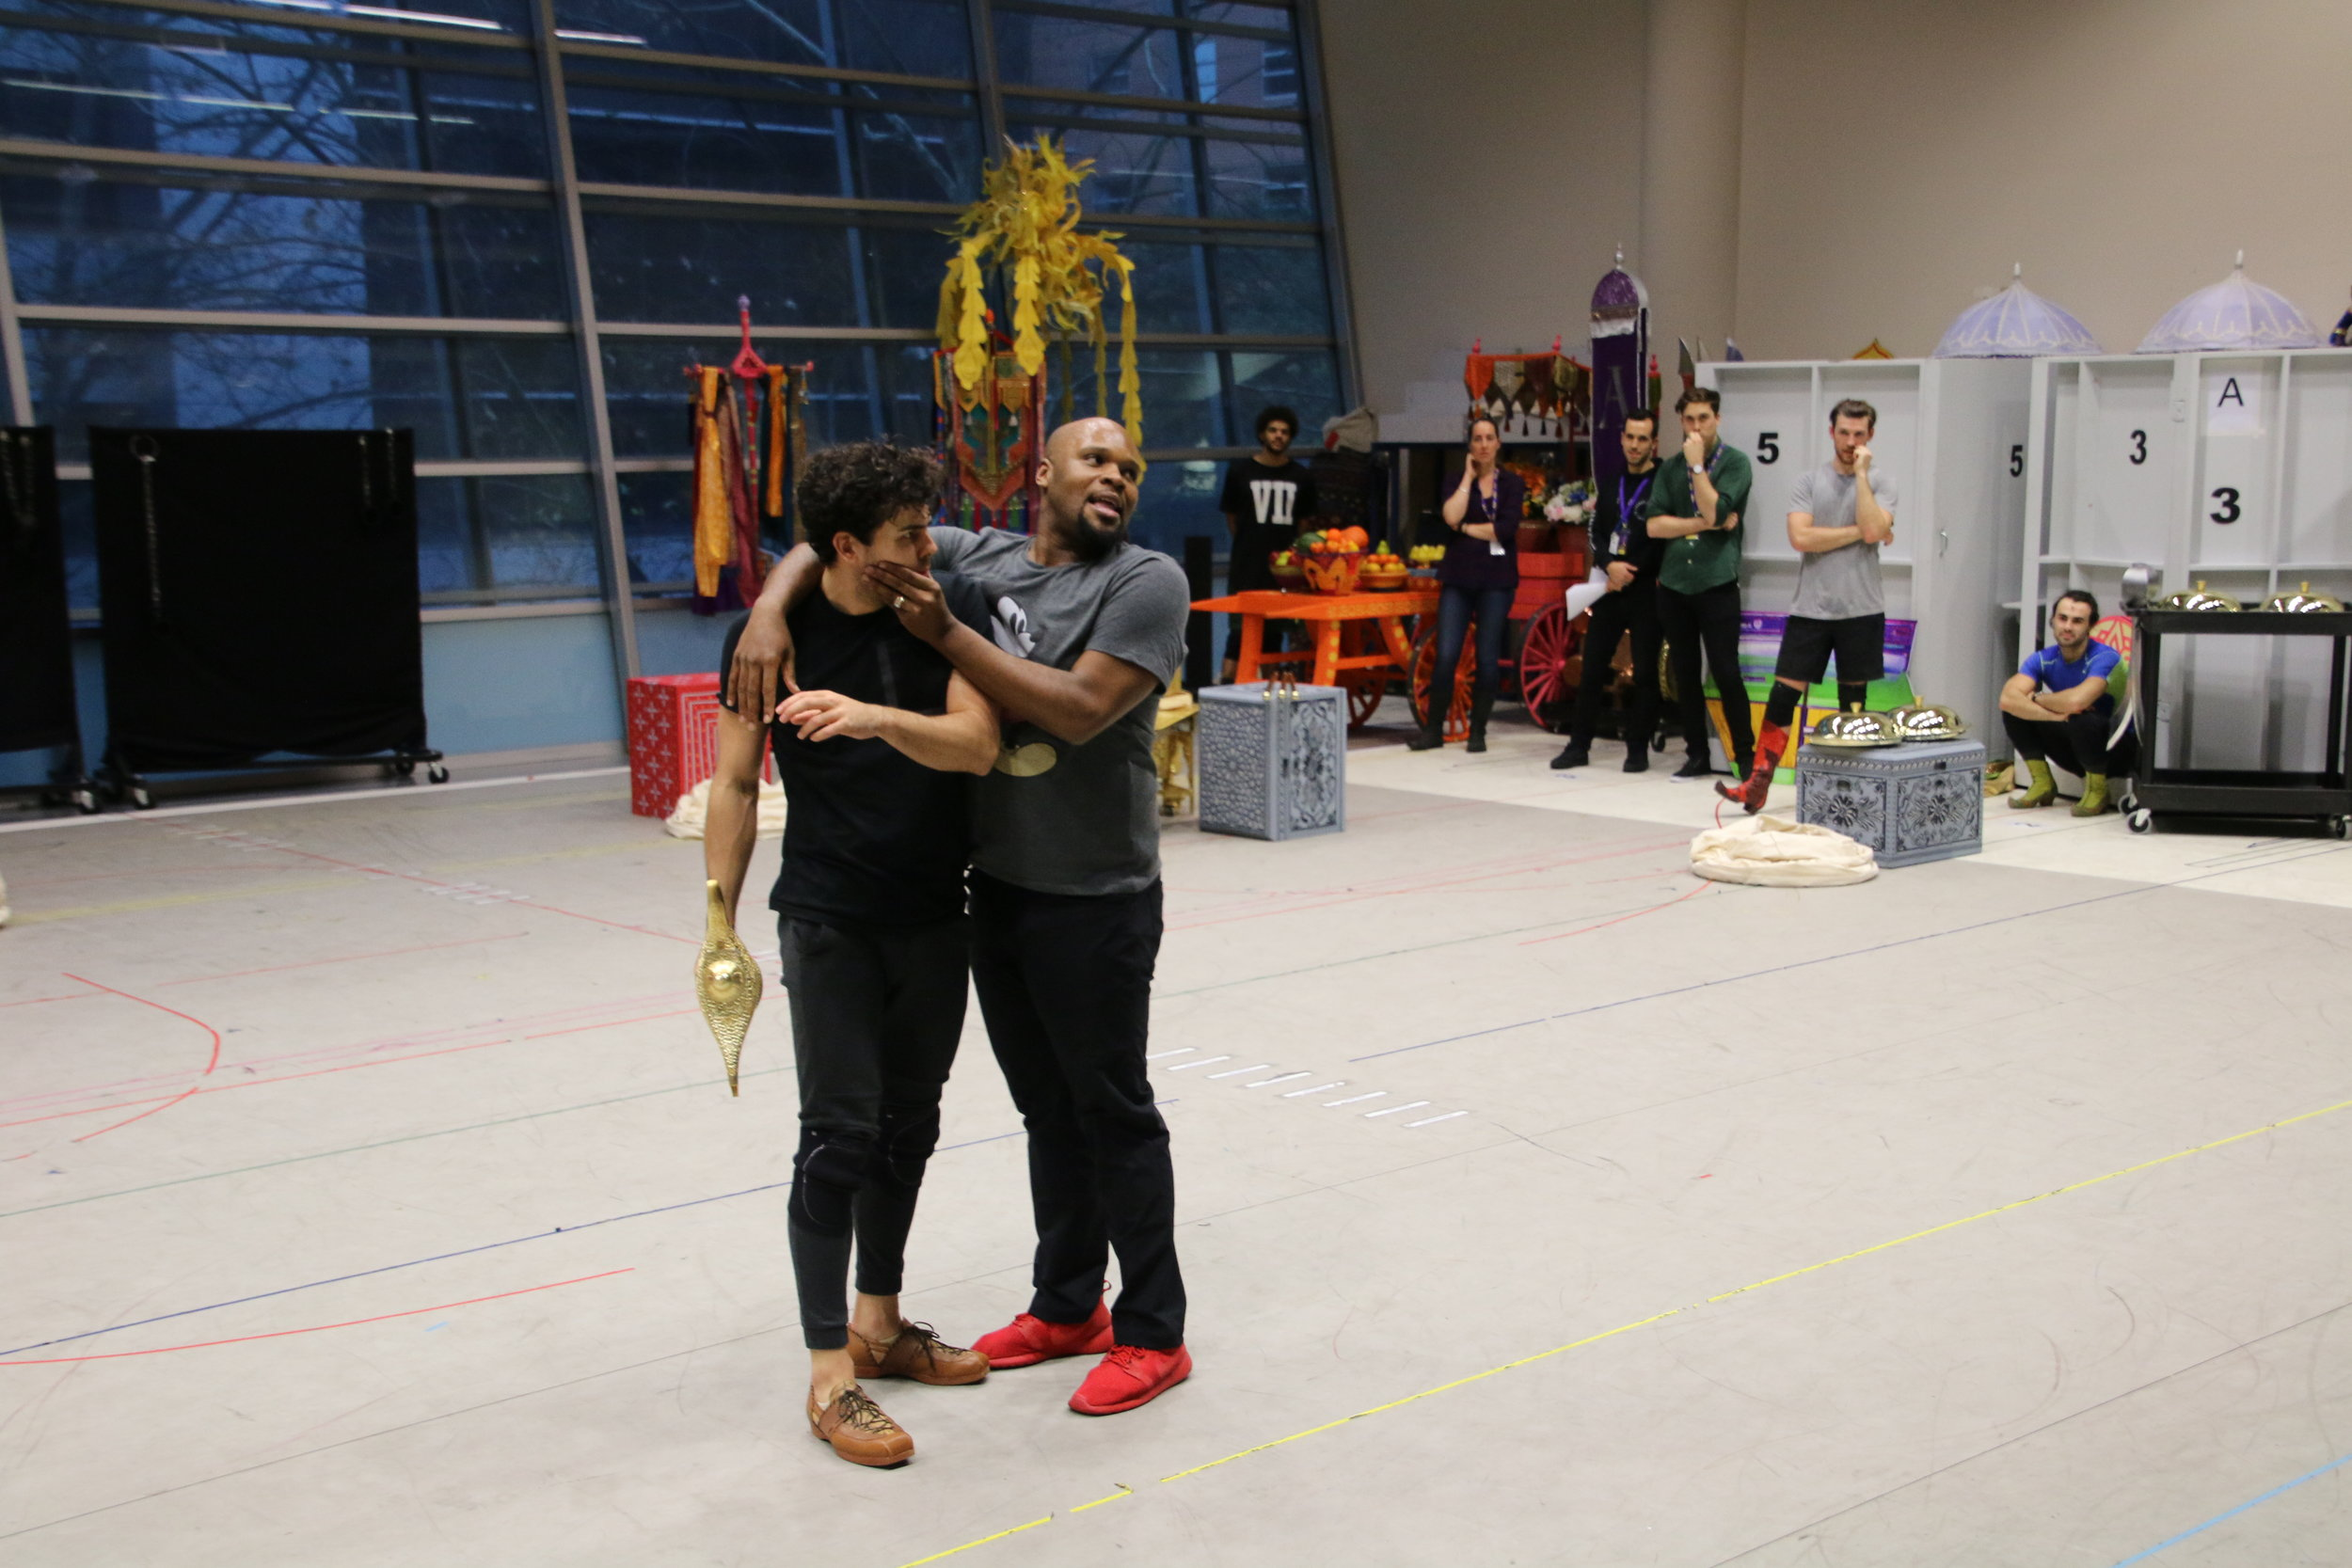 Aladdin The Musical - Rehearsal Process